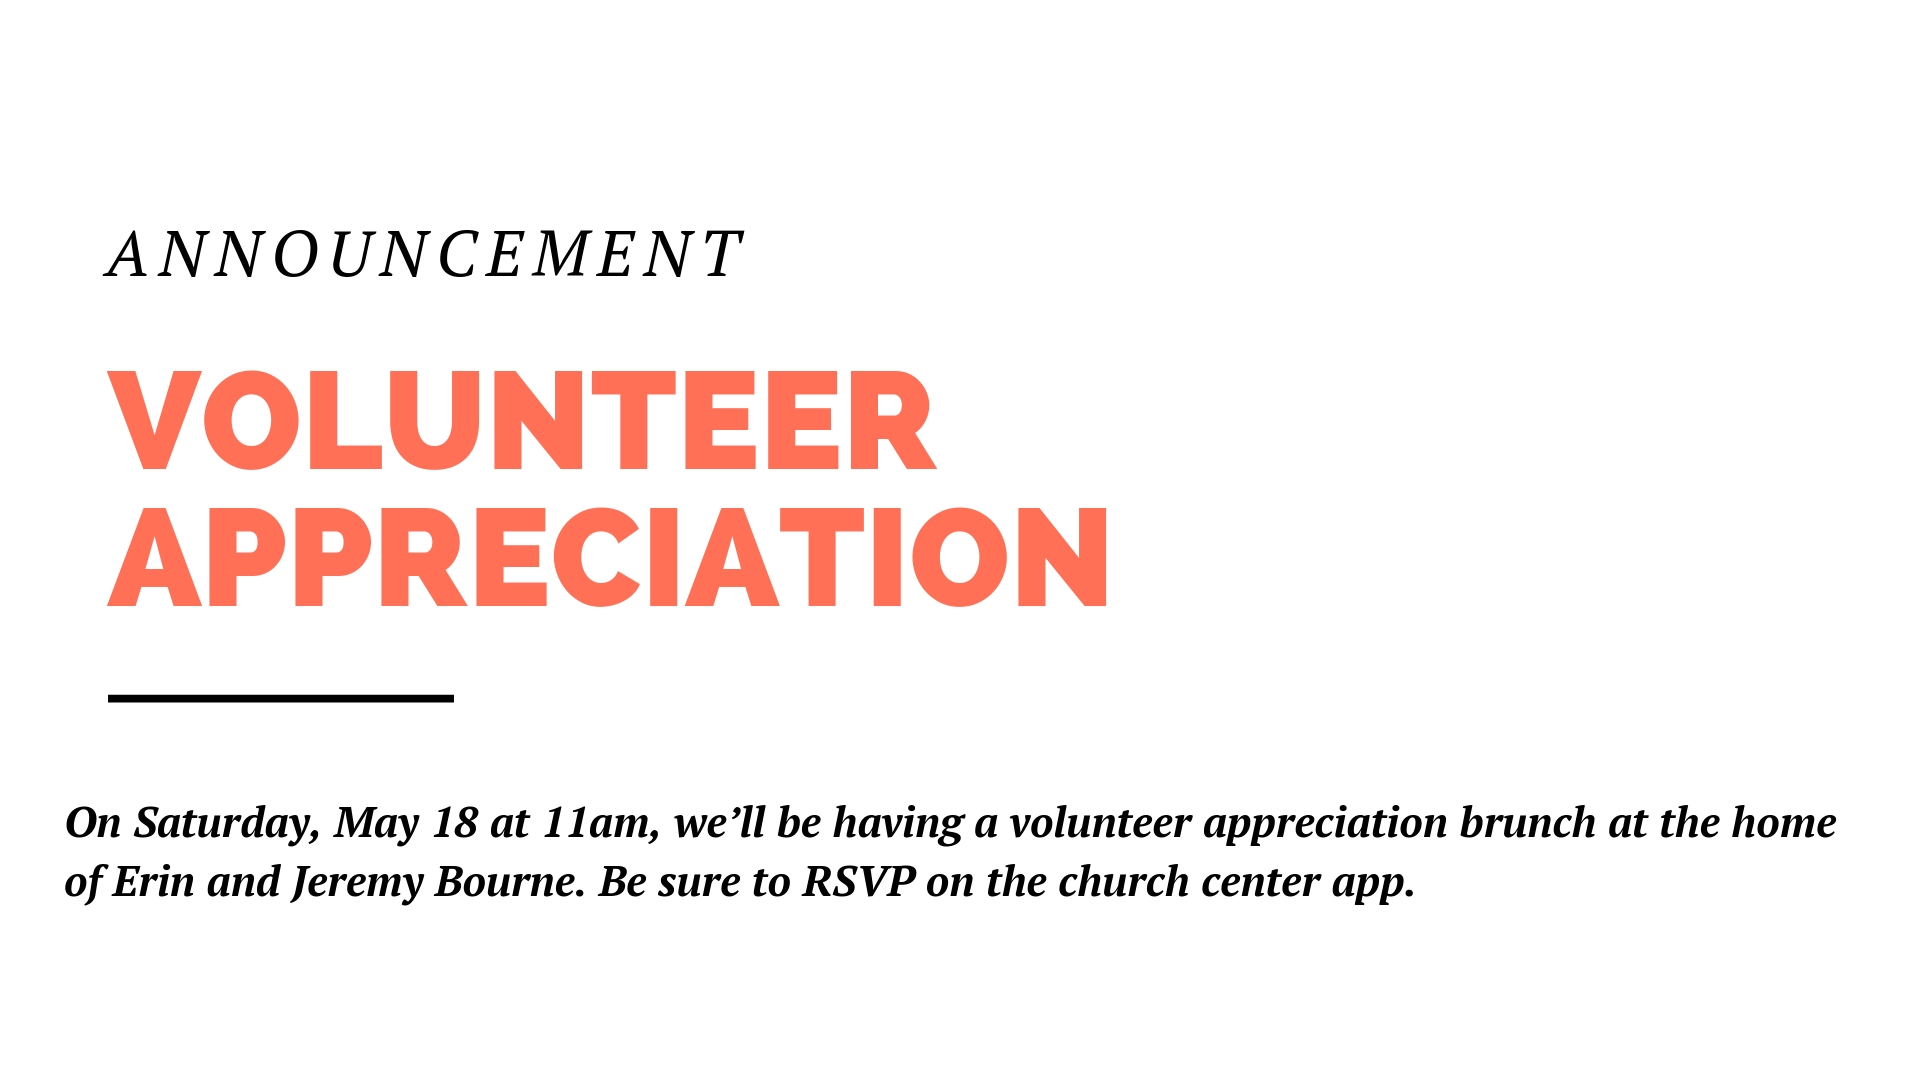 On Saturday, May 18 at 11am, we'll be having a volunteer appreciation brunch at the home of Erin and Jeremy Bourne. If you volunteer in any capacity here at the church, you're invited to come eat and celebrate. No need to bring anything, but be sure to RSVP on the church center app.